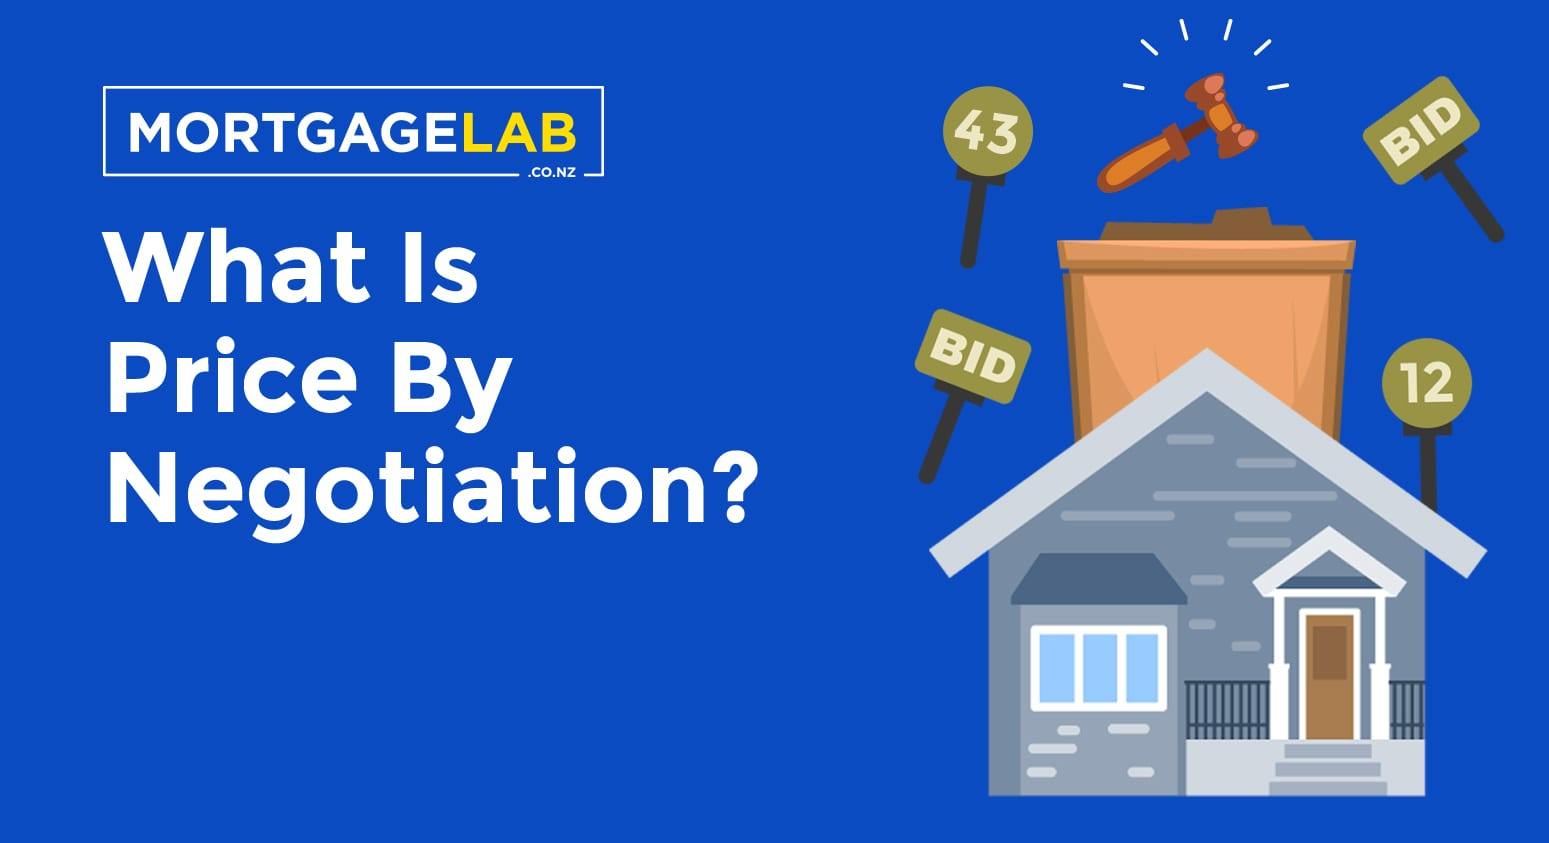 What is Price By Negotiation?